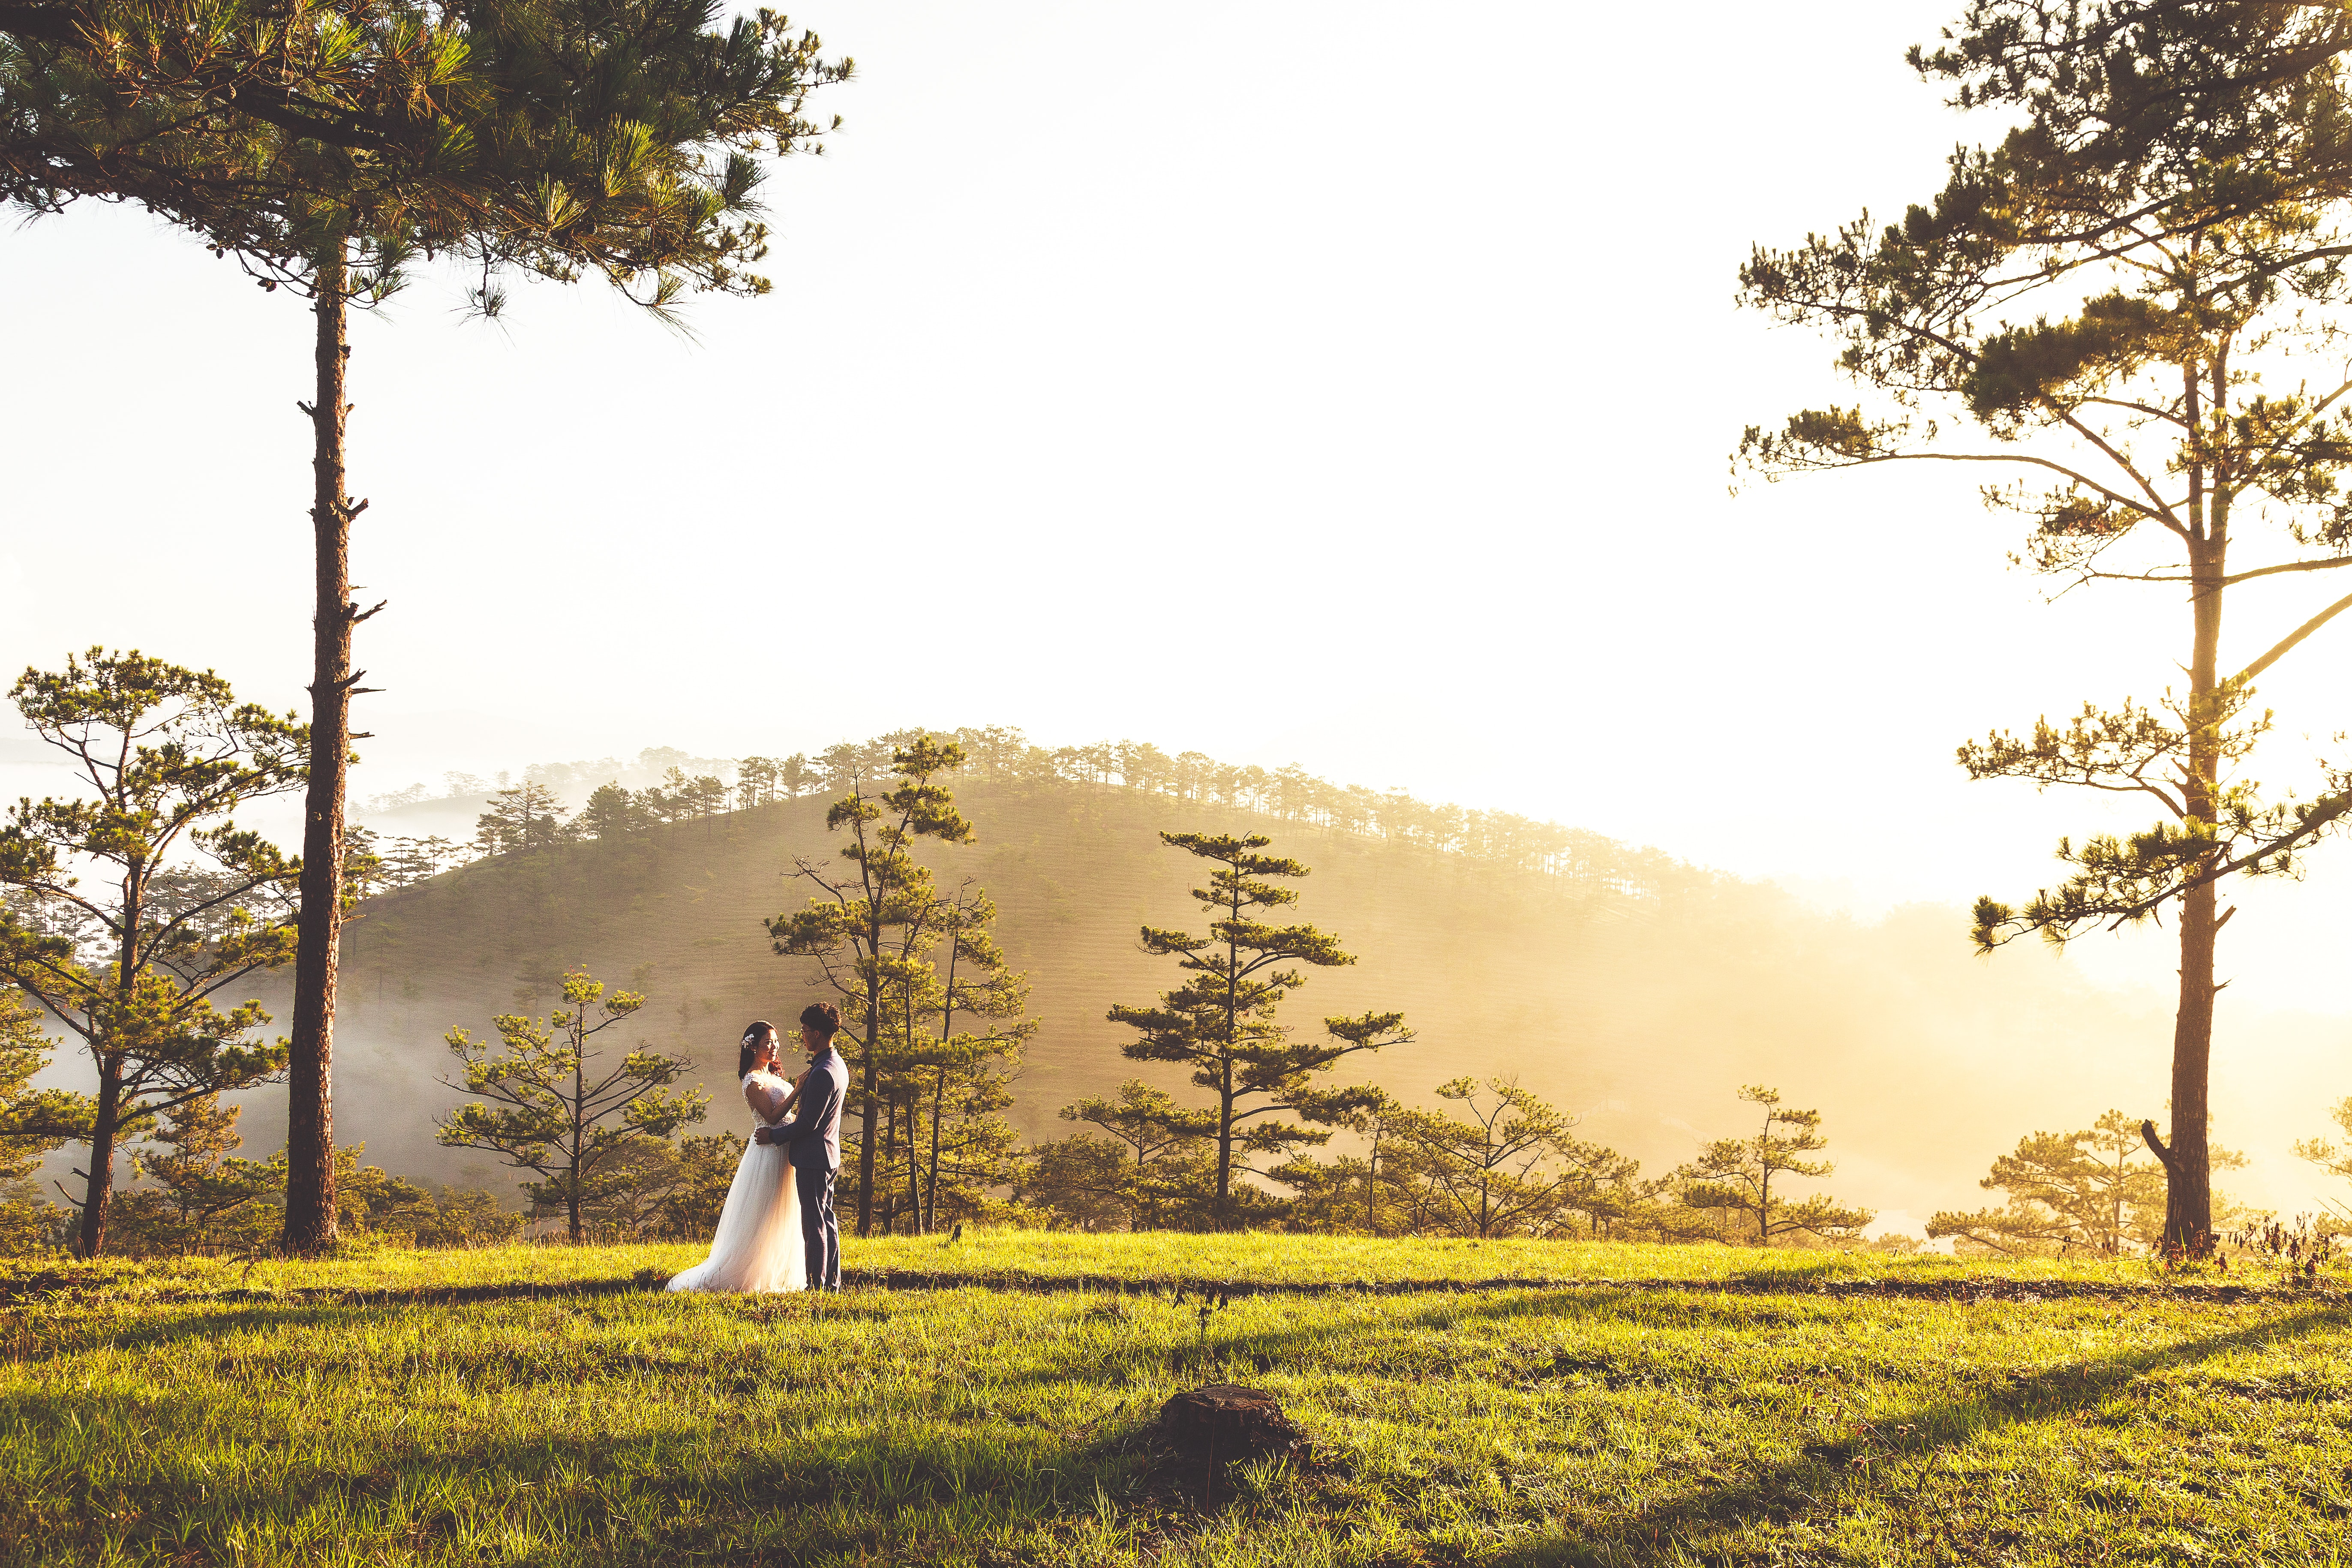 groom and bride standing on green grass field while cuddling and with mountain and trees at the distance during daytime